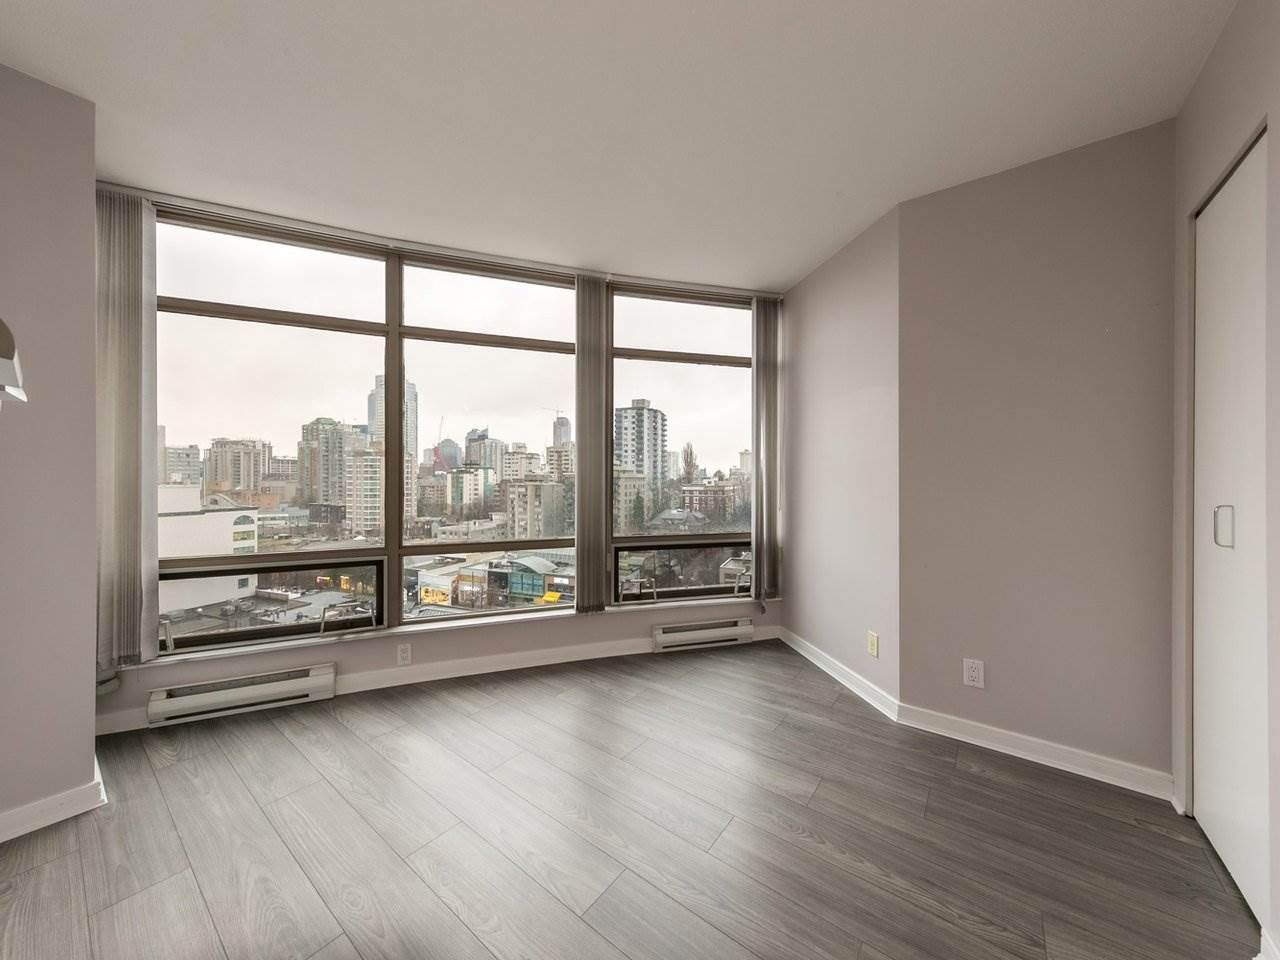 """Photo 7: Photos: 1202 1200 ALBERNI Street in Vancouver: West End VW Condo for sale in """"Palisades"""" (Vancouver West)  : MLS®# R2527140"""